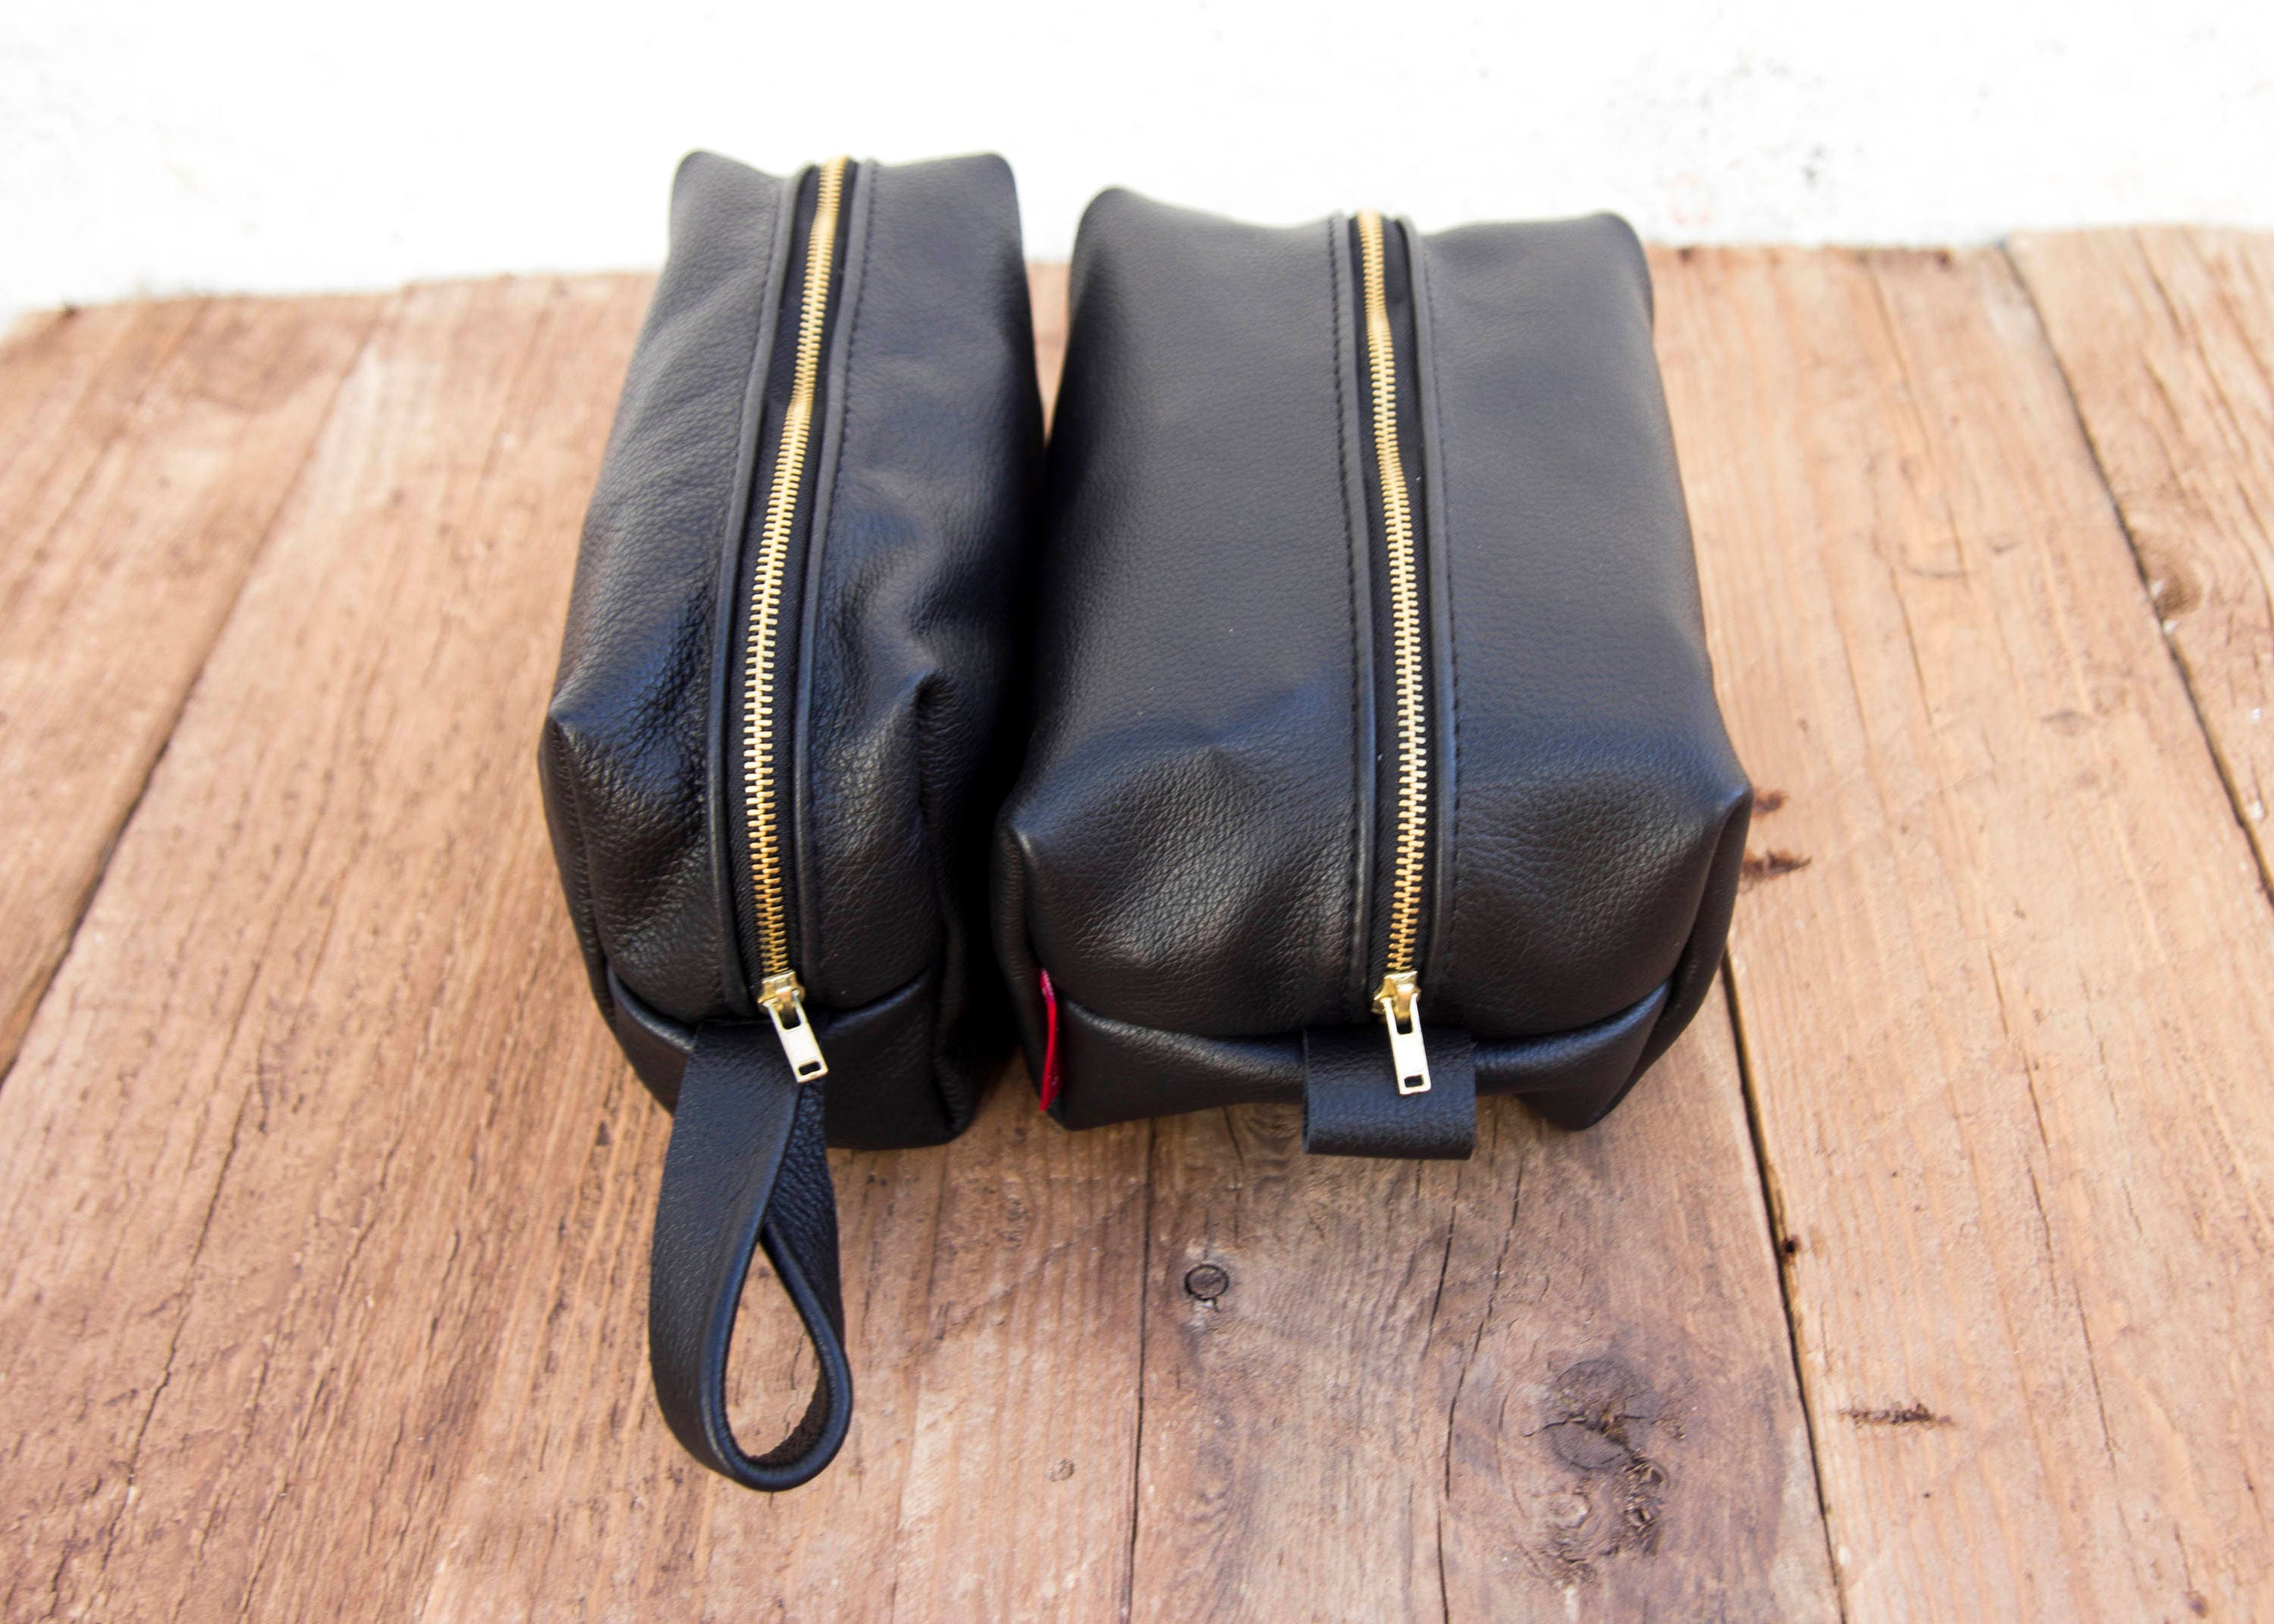 d4a011cd0a4f Full Grain Black Leather Toiletry Bag   Wash Bag   cosmetic